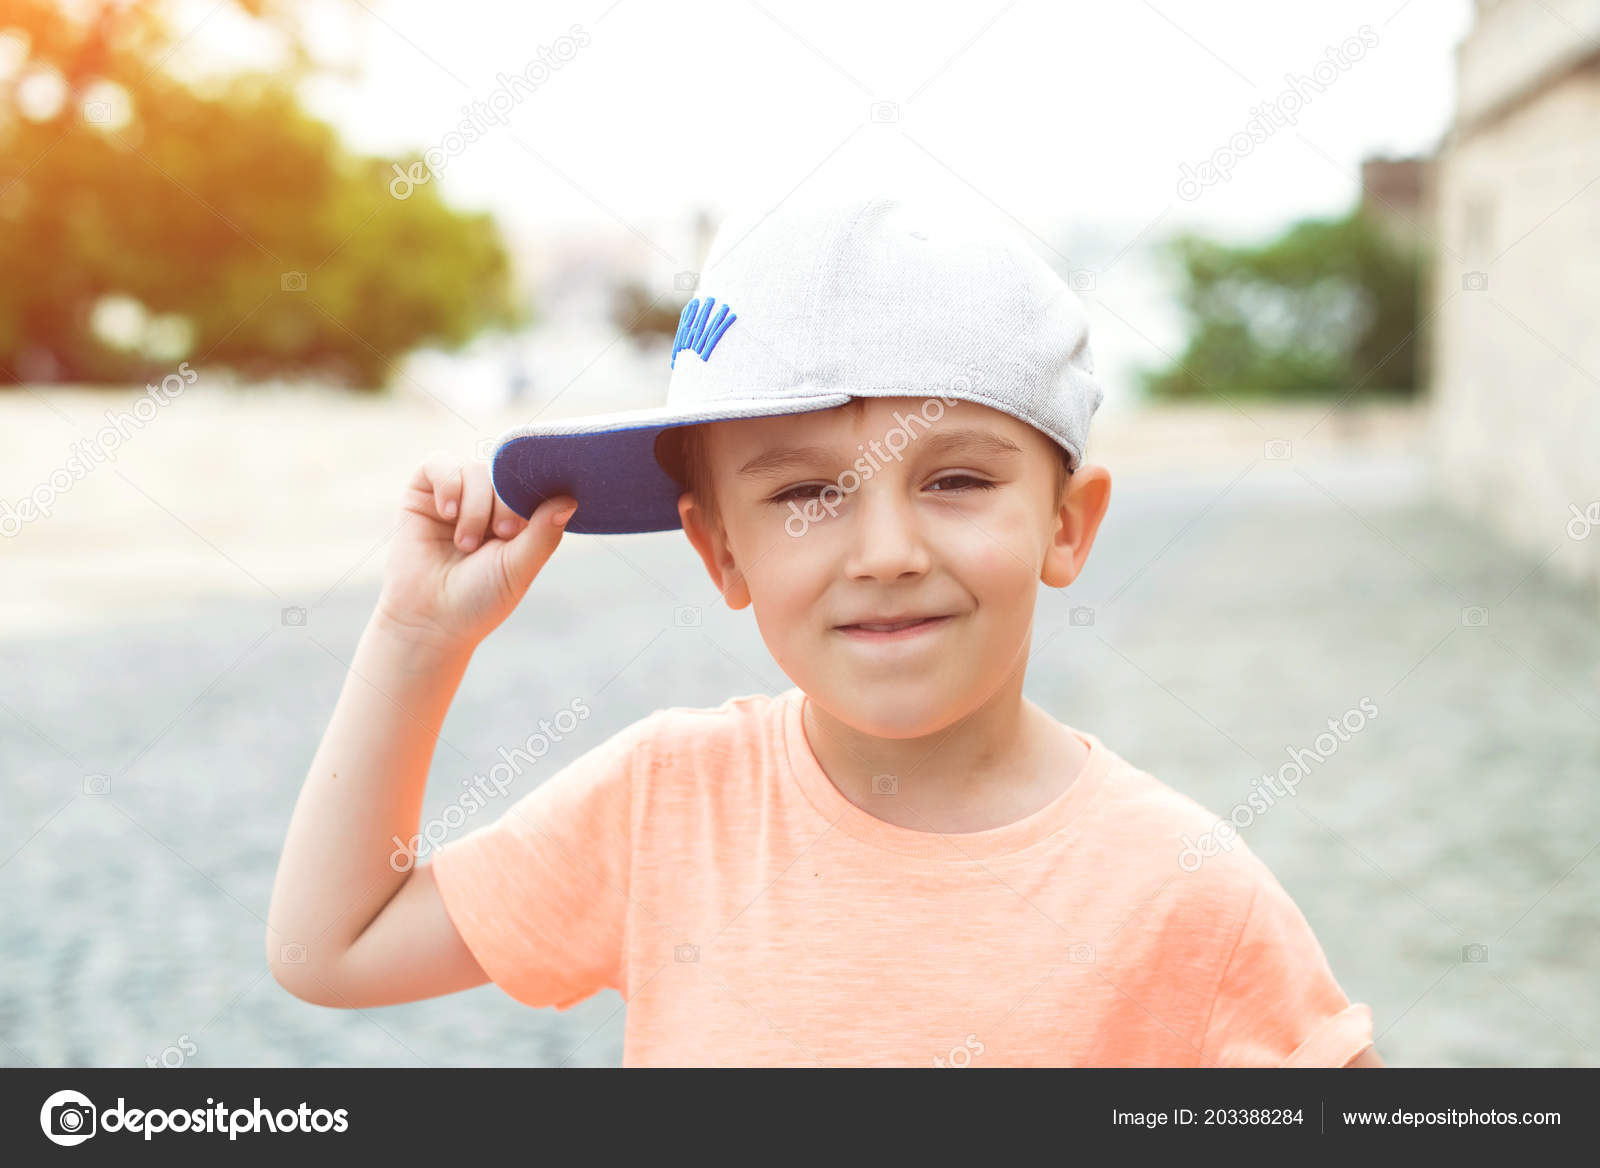 City style. Urban kids. Happy childhood. Kids fashion.The lovely little boy  in baseball cap. Summer holidays. Funky little boy in city street– stock  image 86d1a72abc48